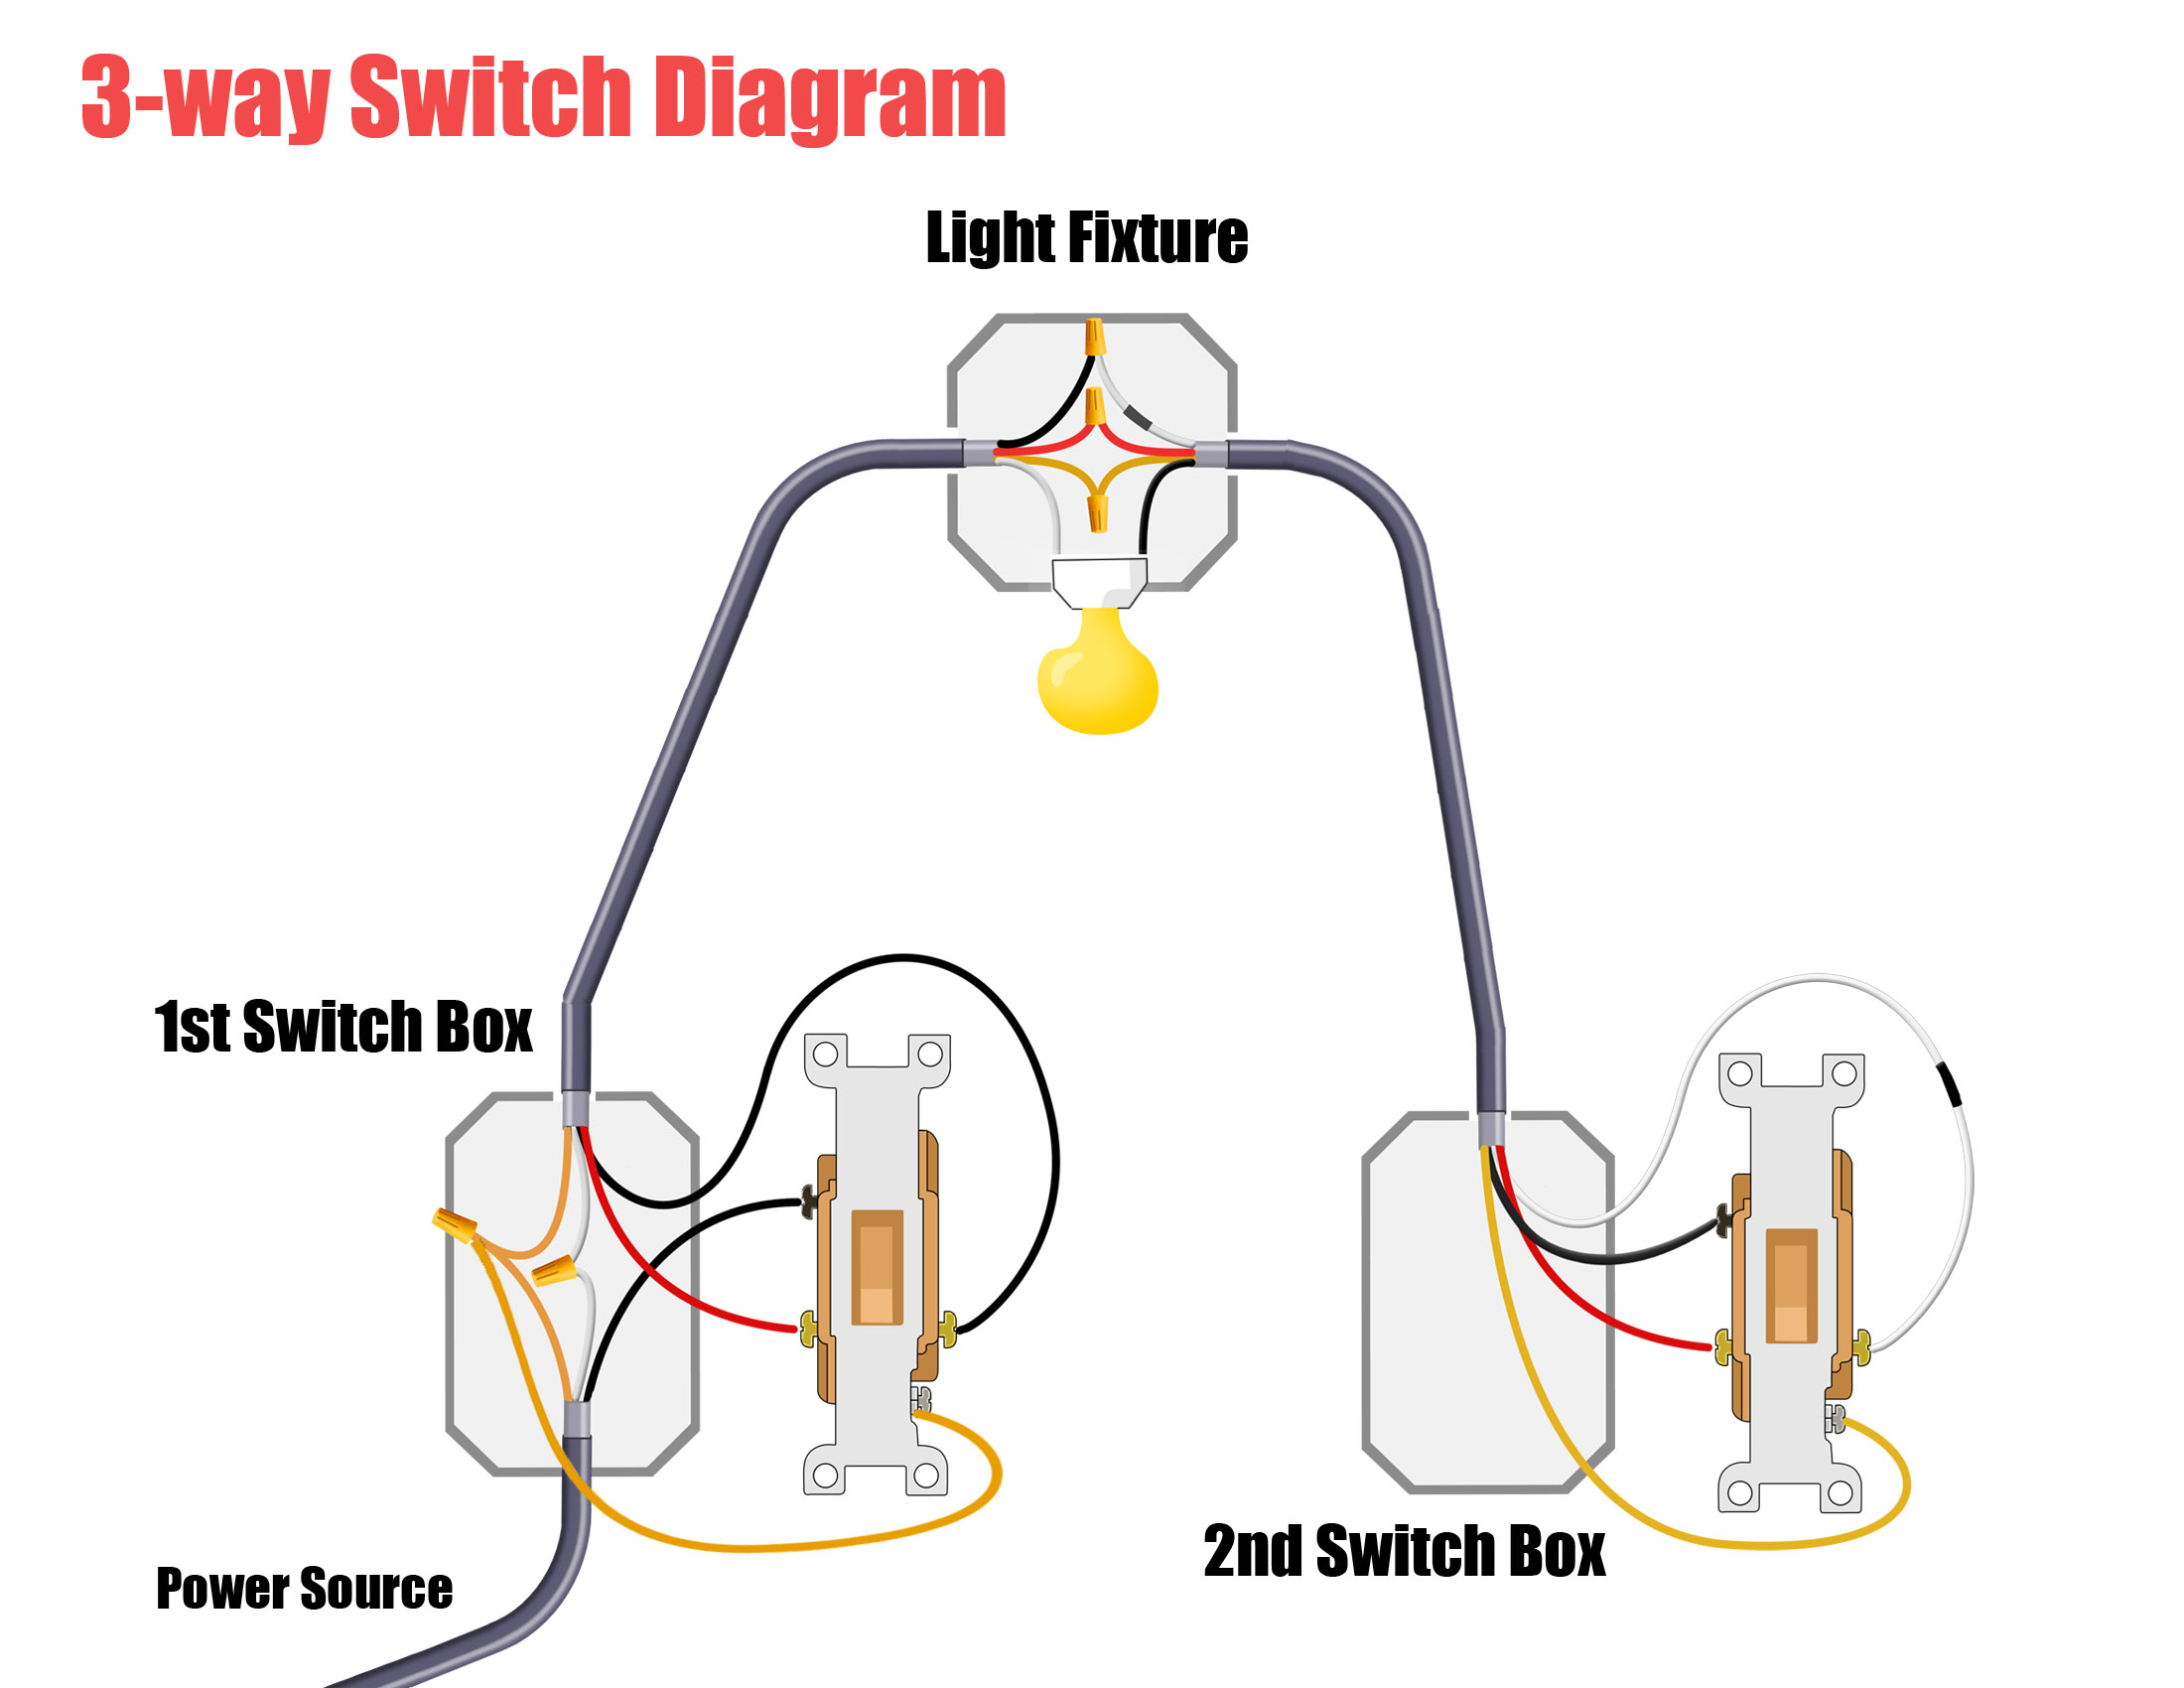 two way switch wiring diagram for lights 2002 jeep wrangler one light switches free engine